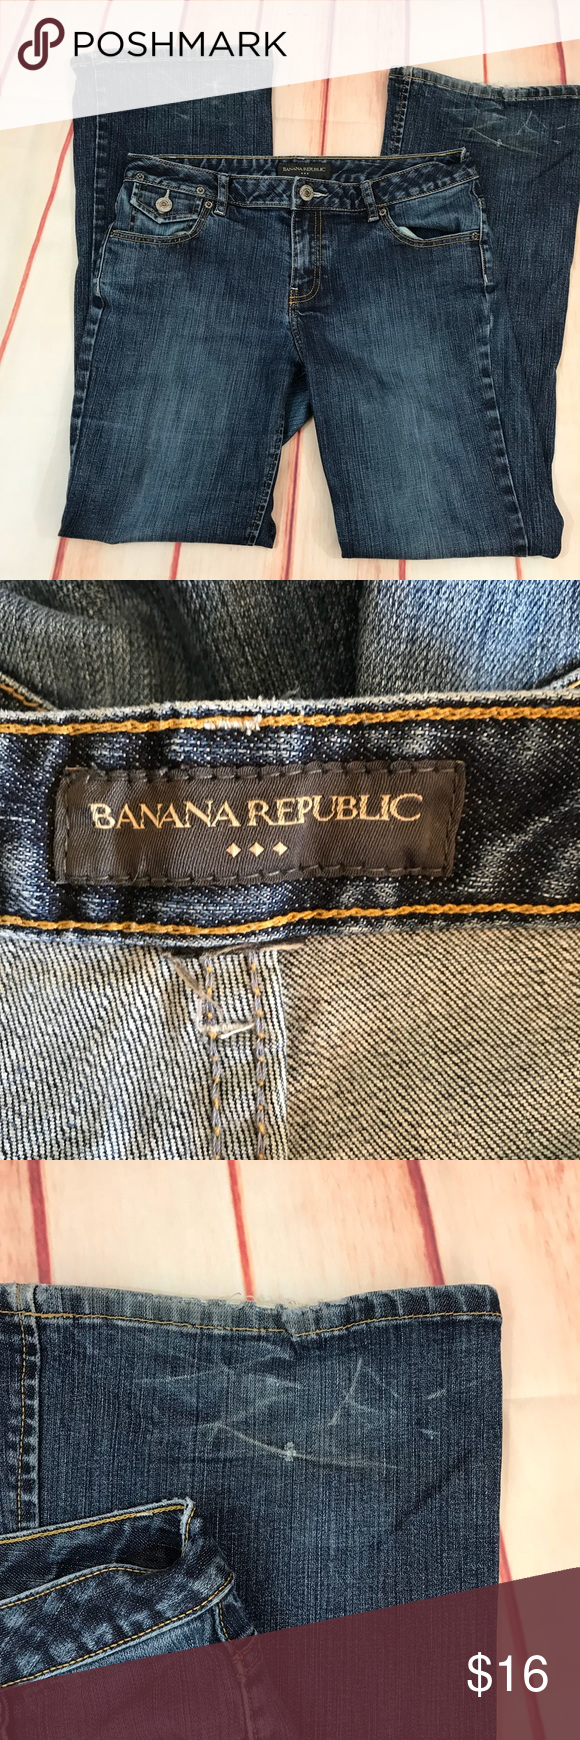 Banana Republic Jeans, Size Aprox 16 x 32 Size is tore off